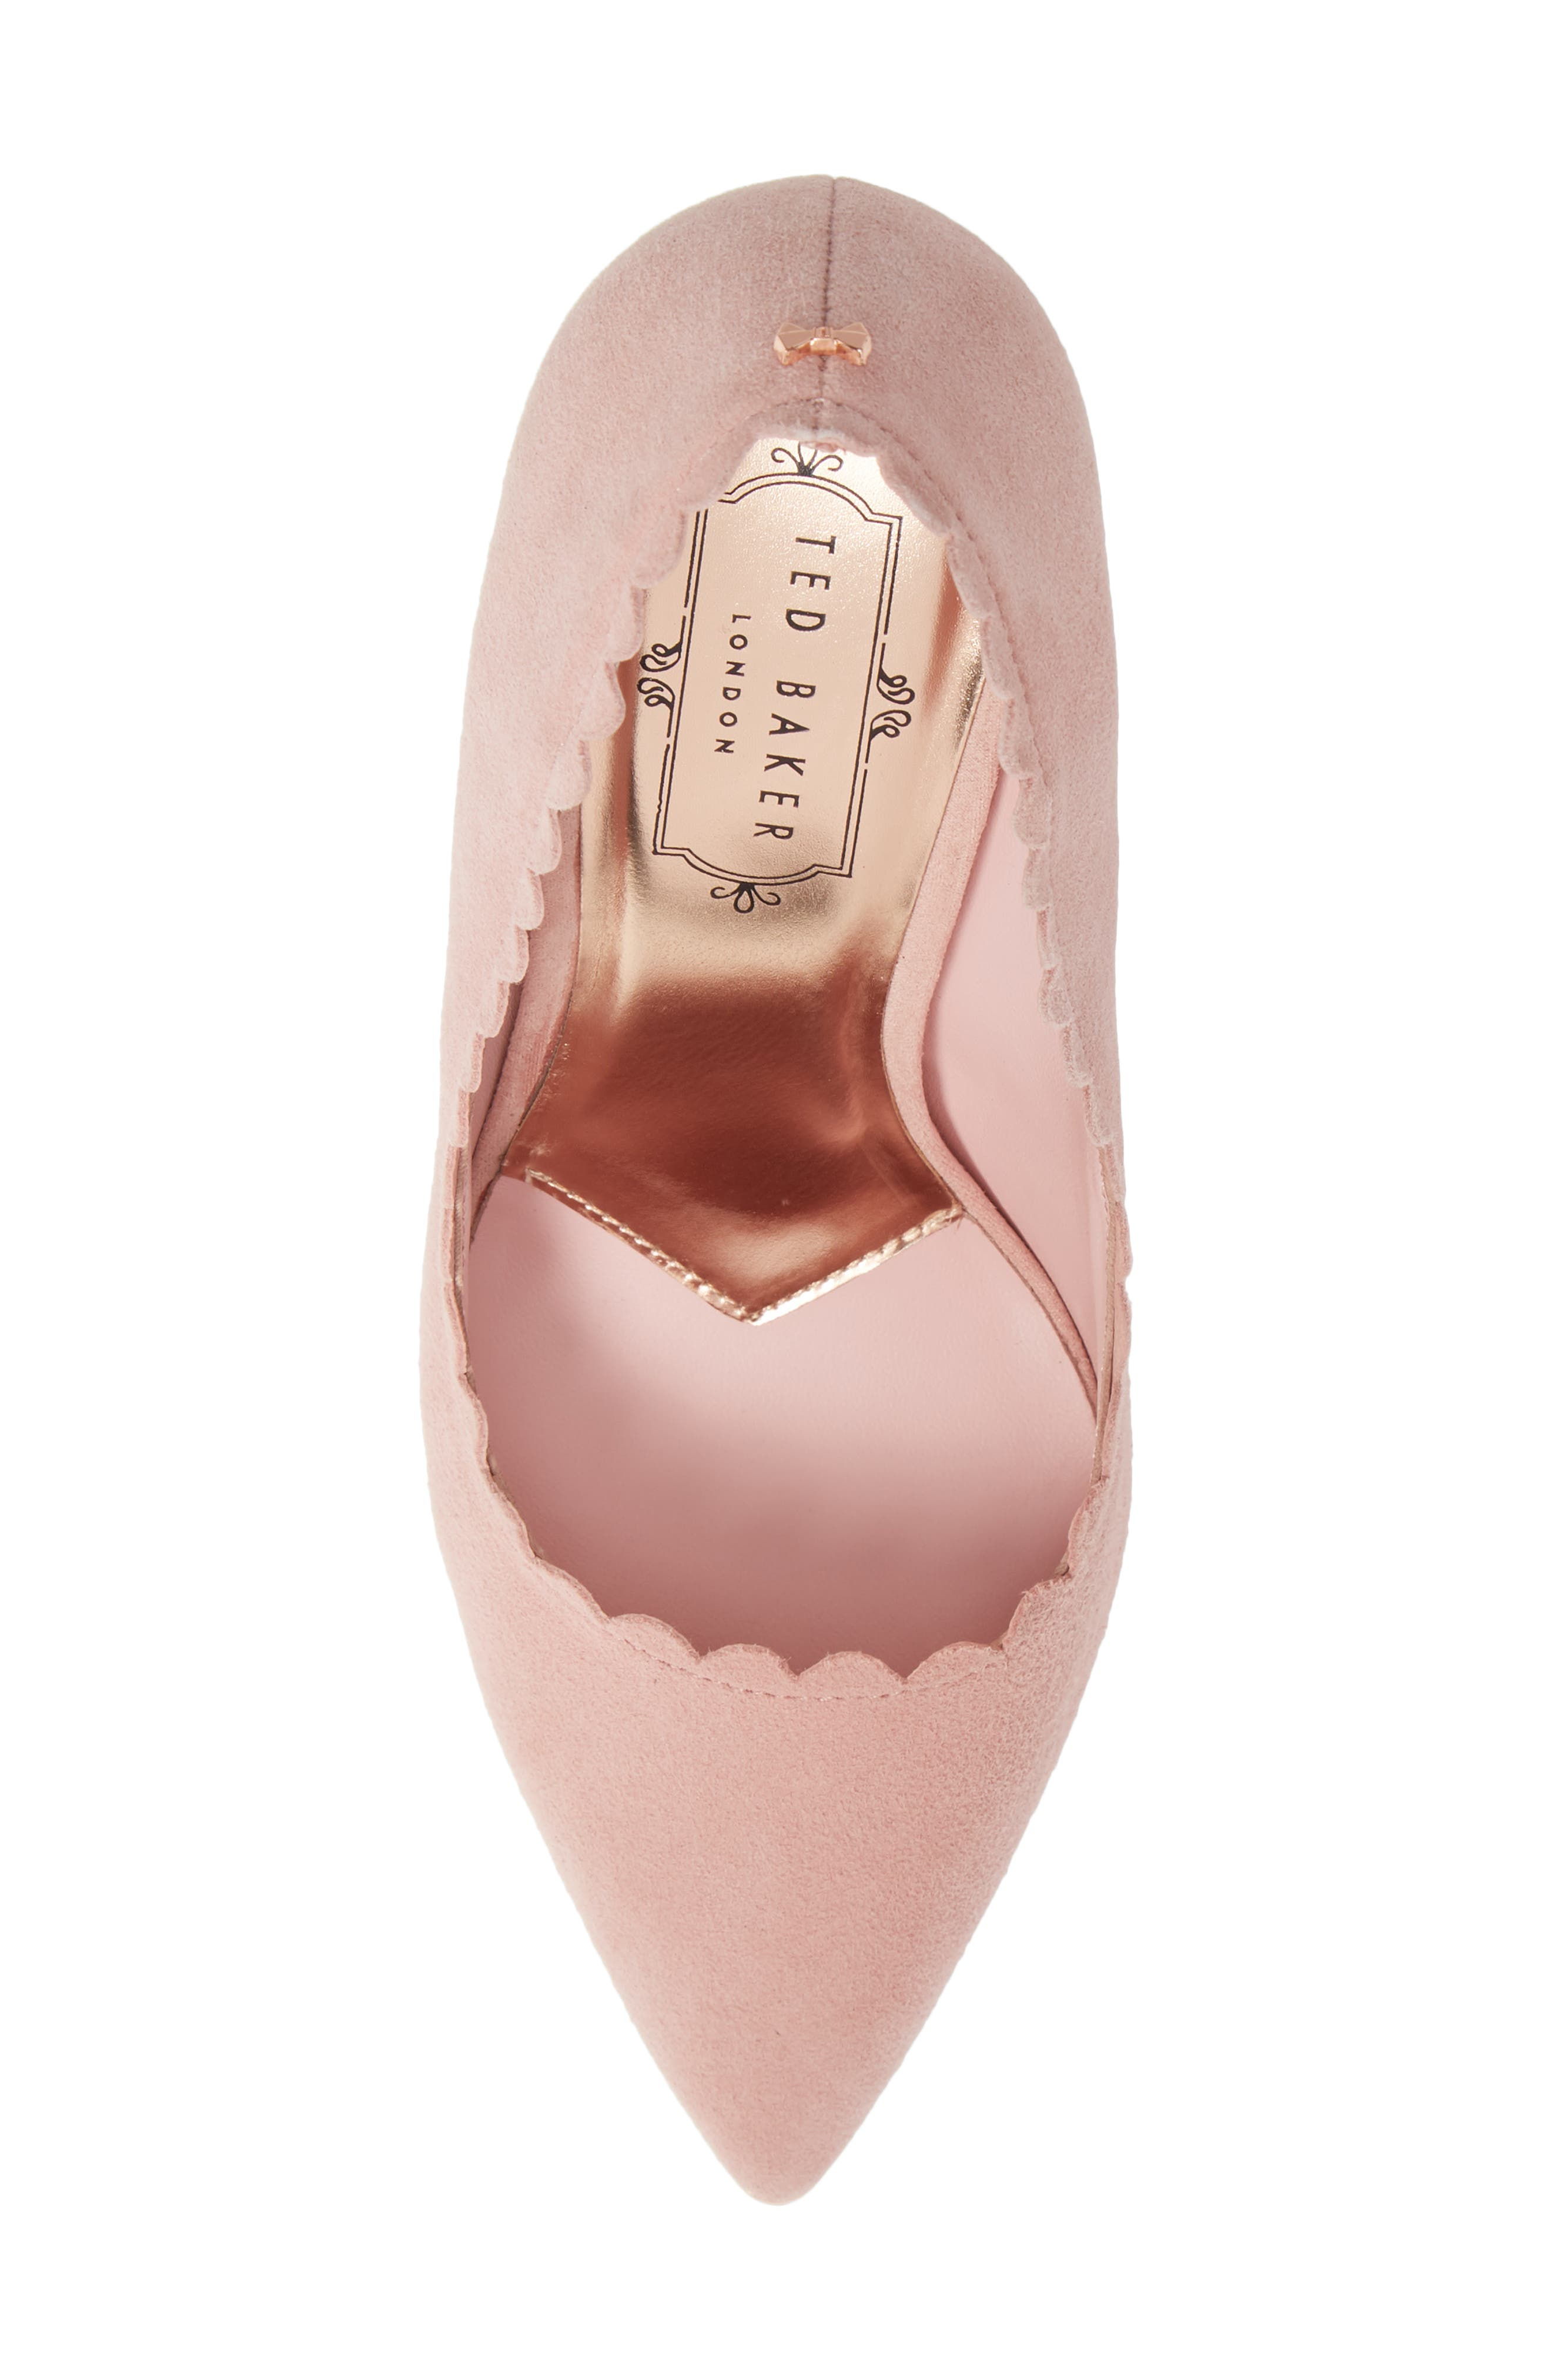 TED BAKER LONDON, Sloana Pointy Toe Pump, Alternate thumbnail 5, color, PINK BLOSSOM SUEDE